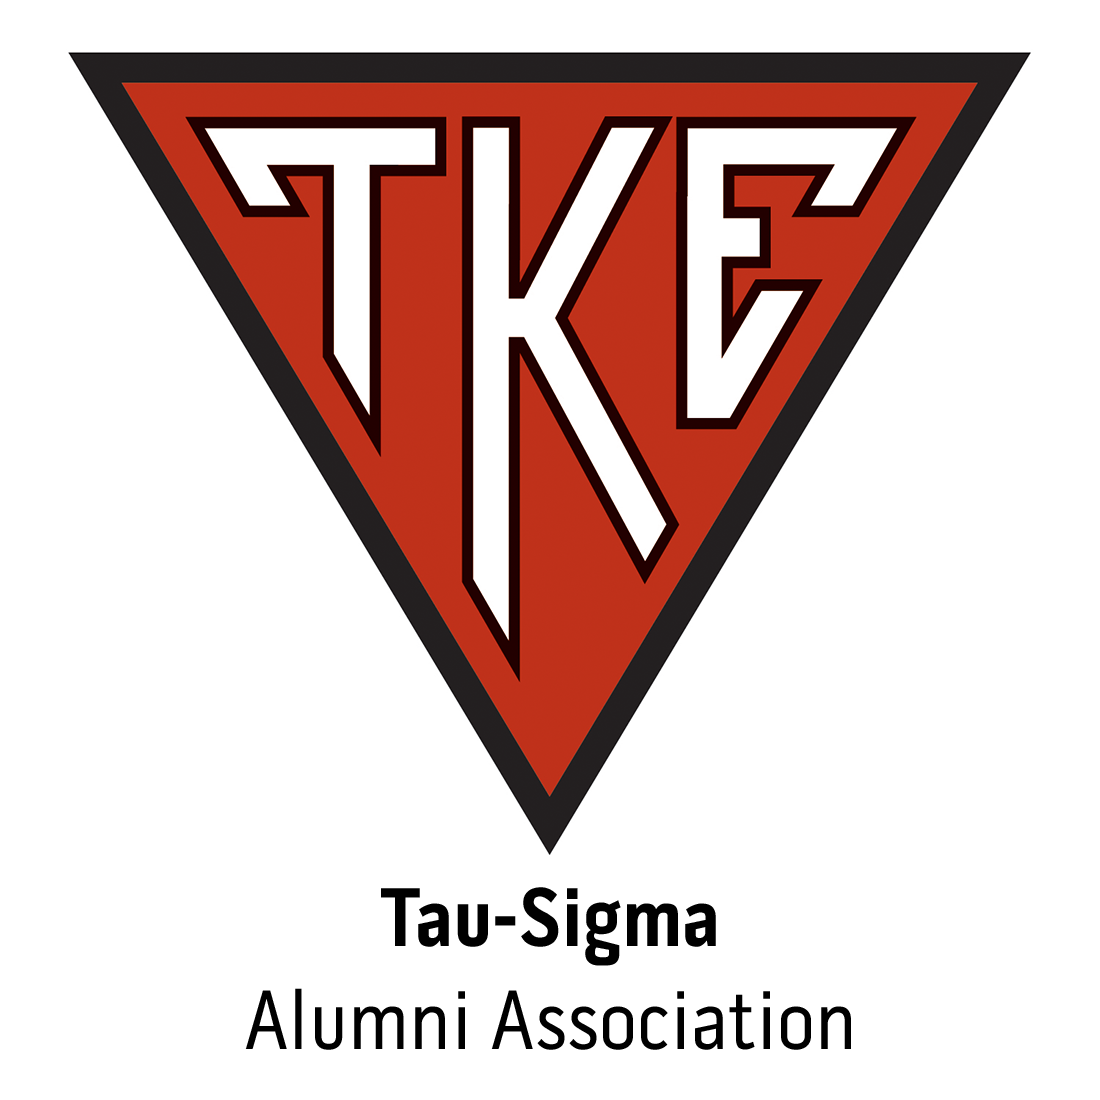 Tau-Sigma Alumni Association for Francis Marion University